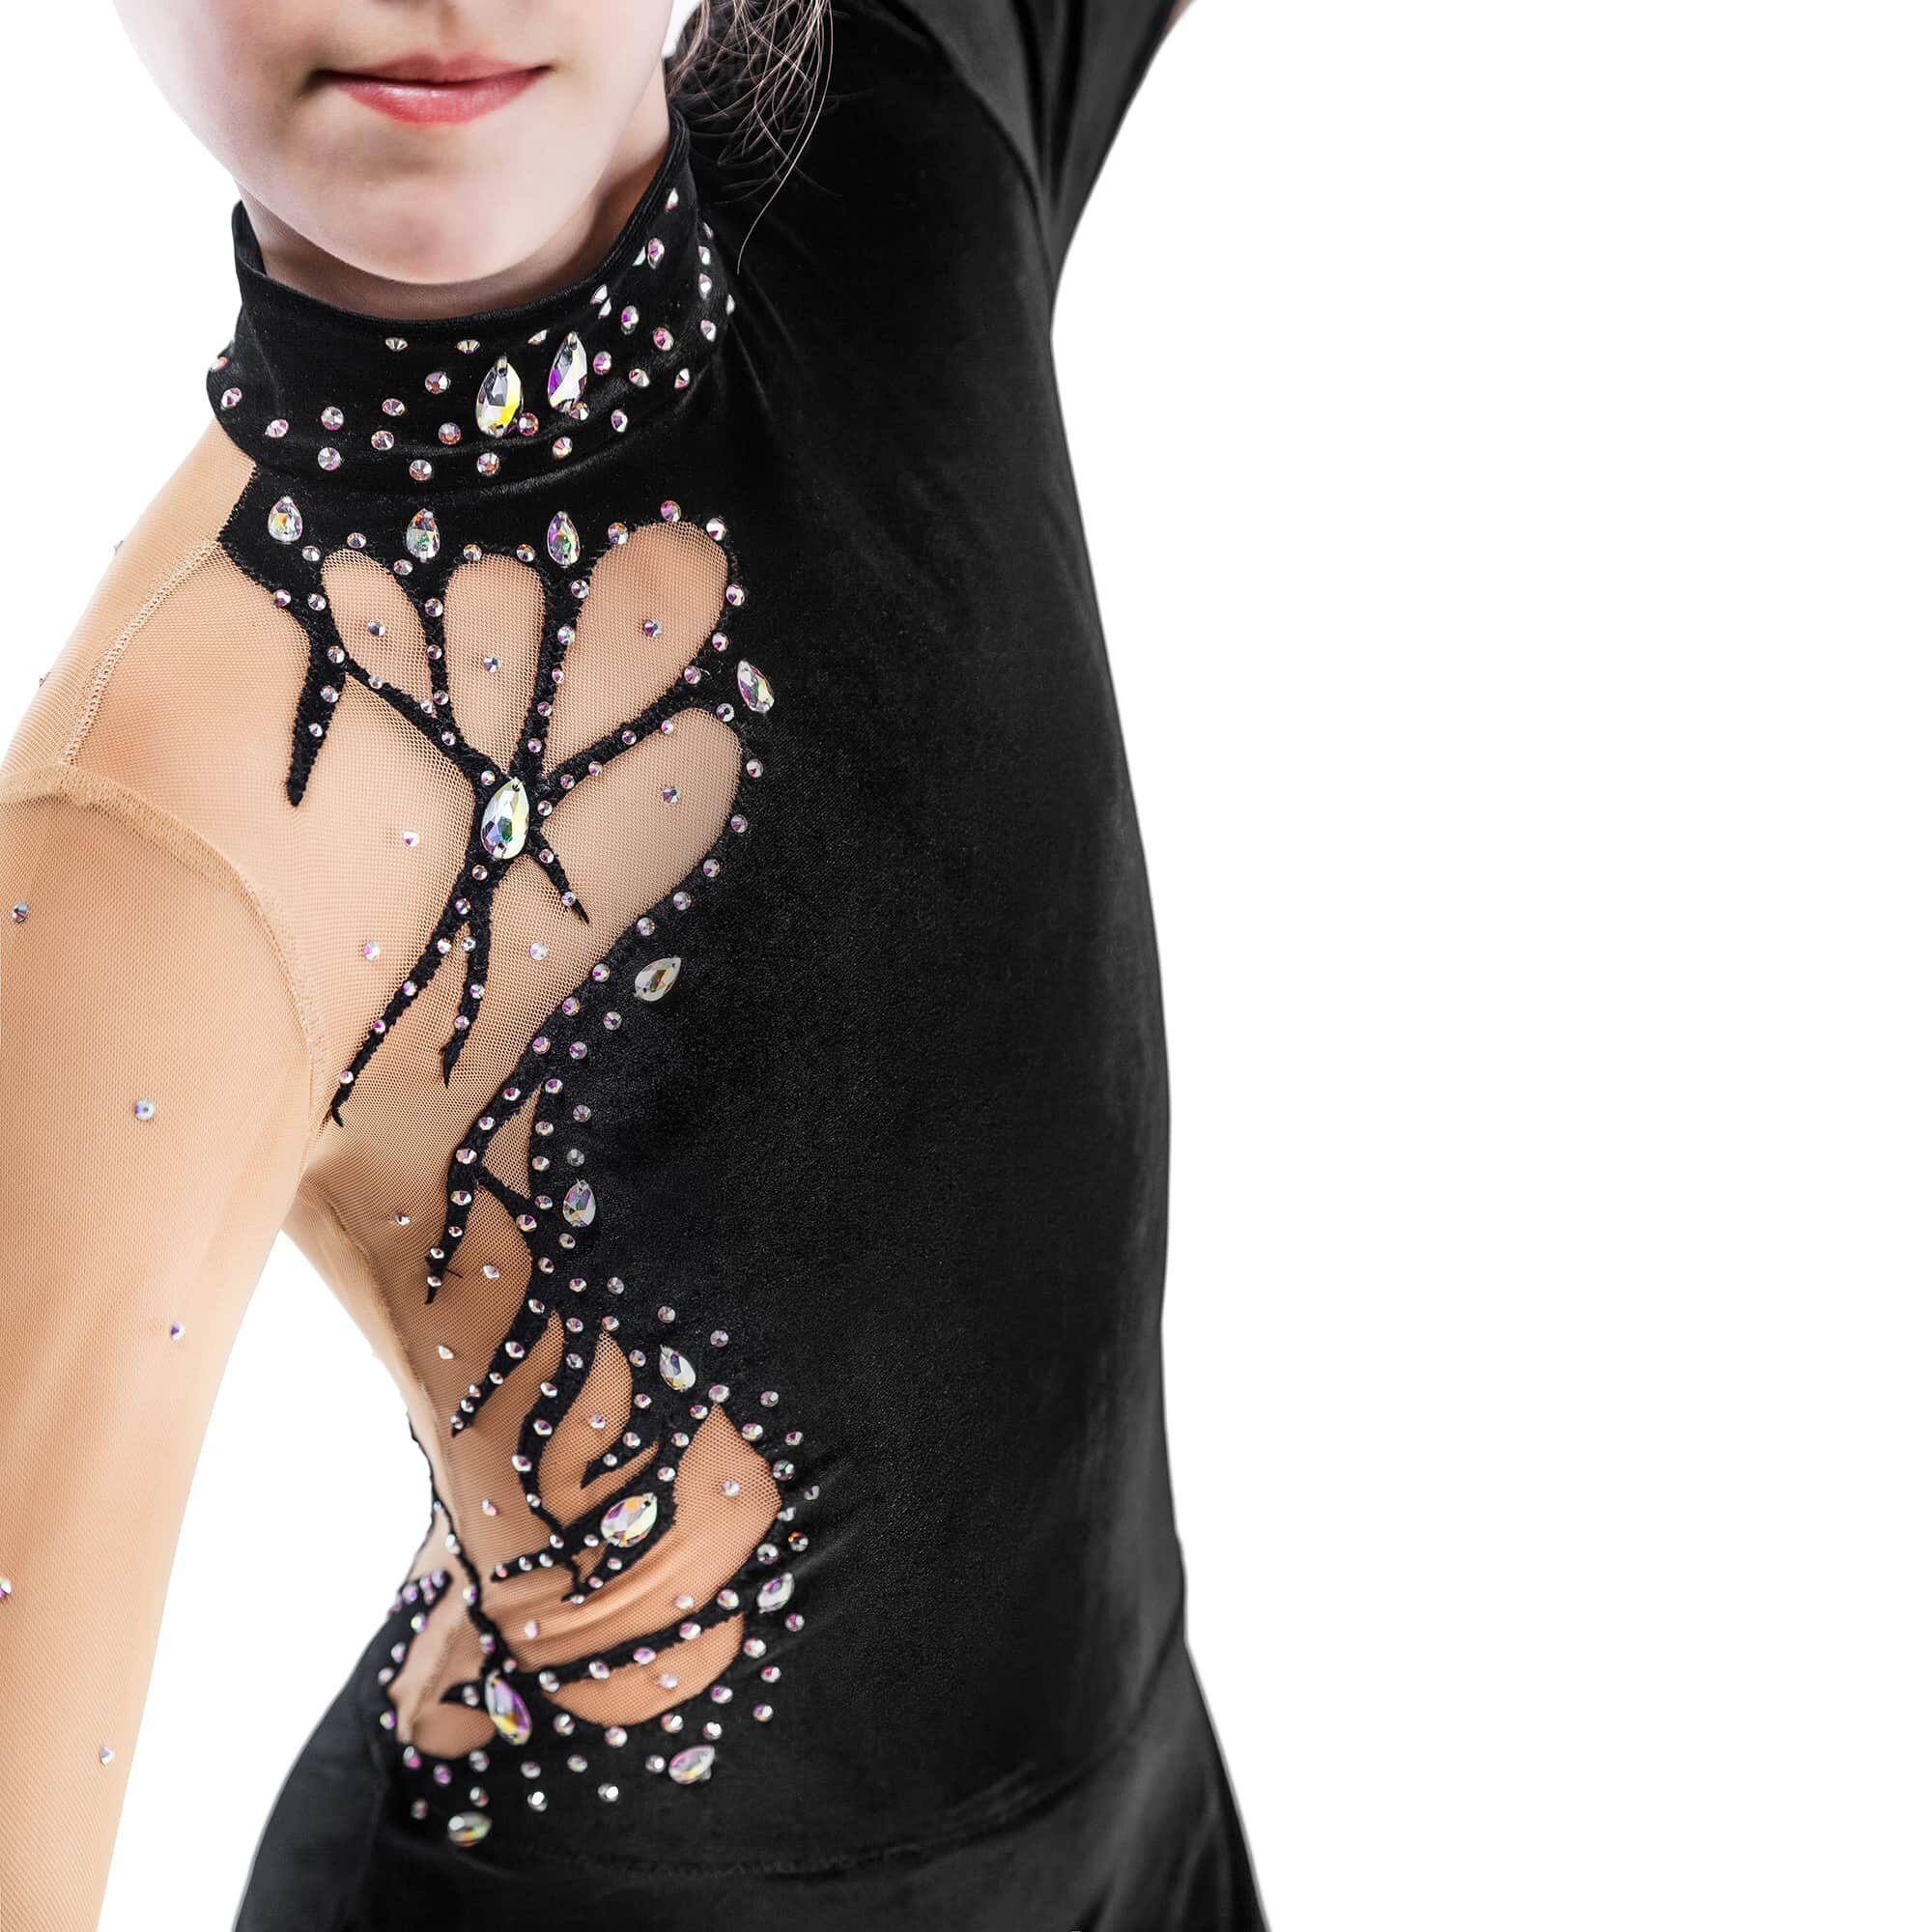 Black Rhythmic Gymnastics Leotard № 152 with two sleeves, skirt & collar with droplet